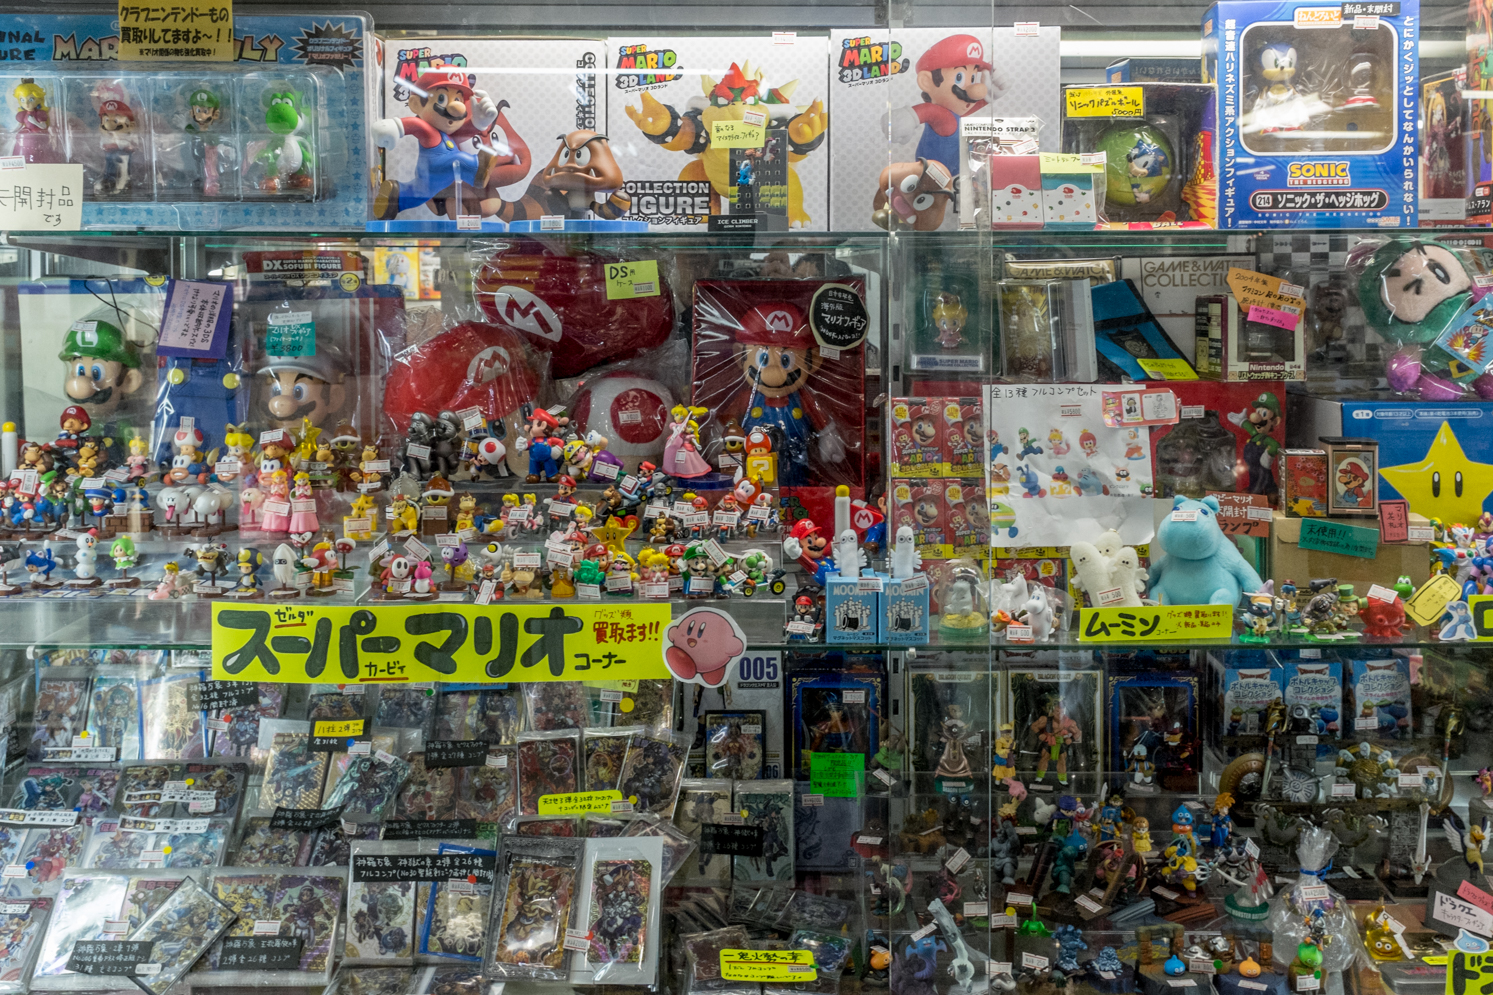 Family Trip to Japan - Part 9